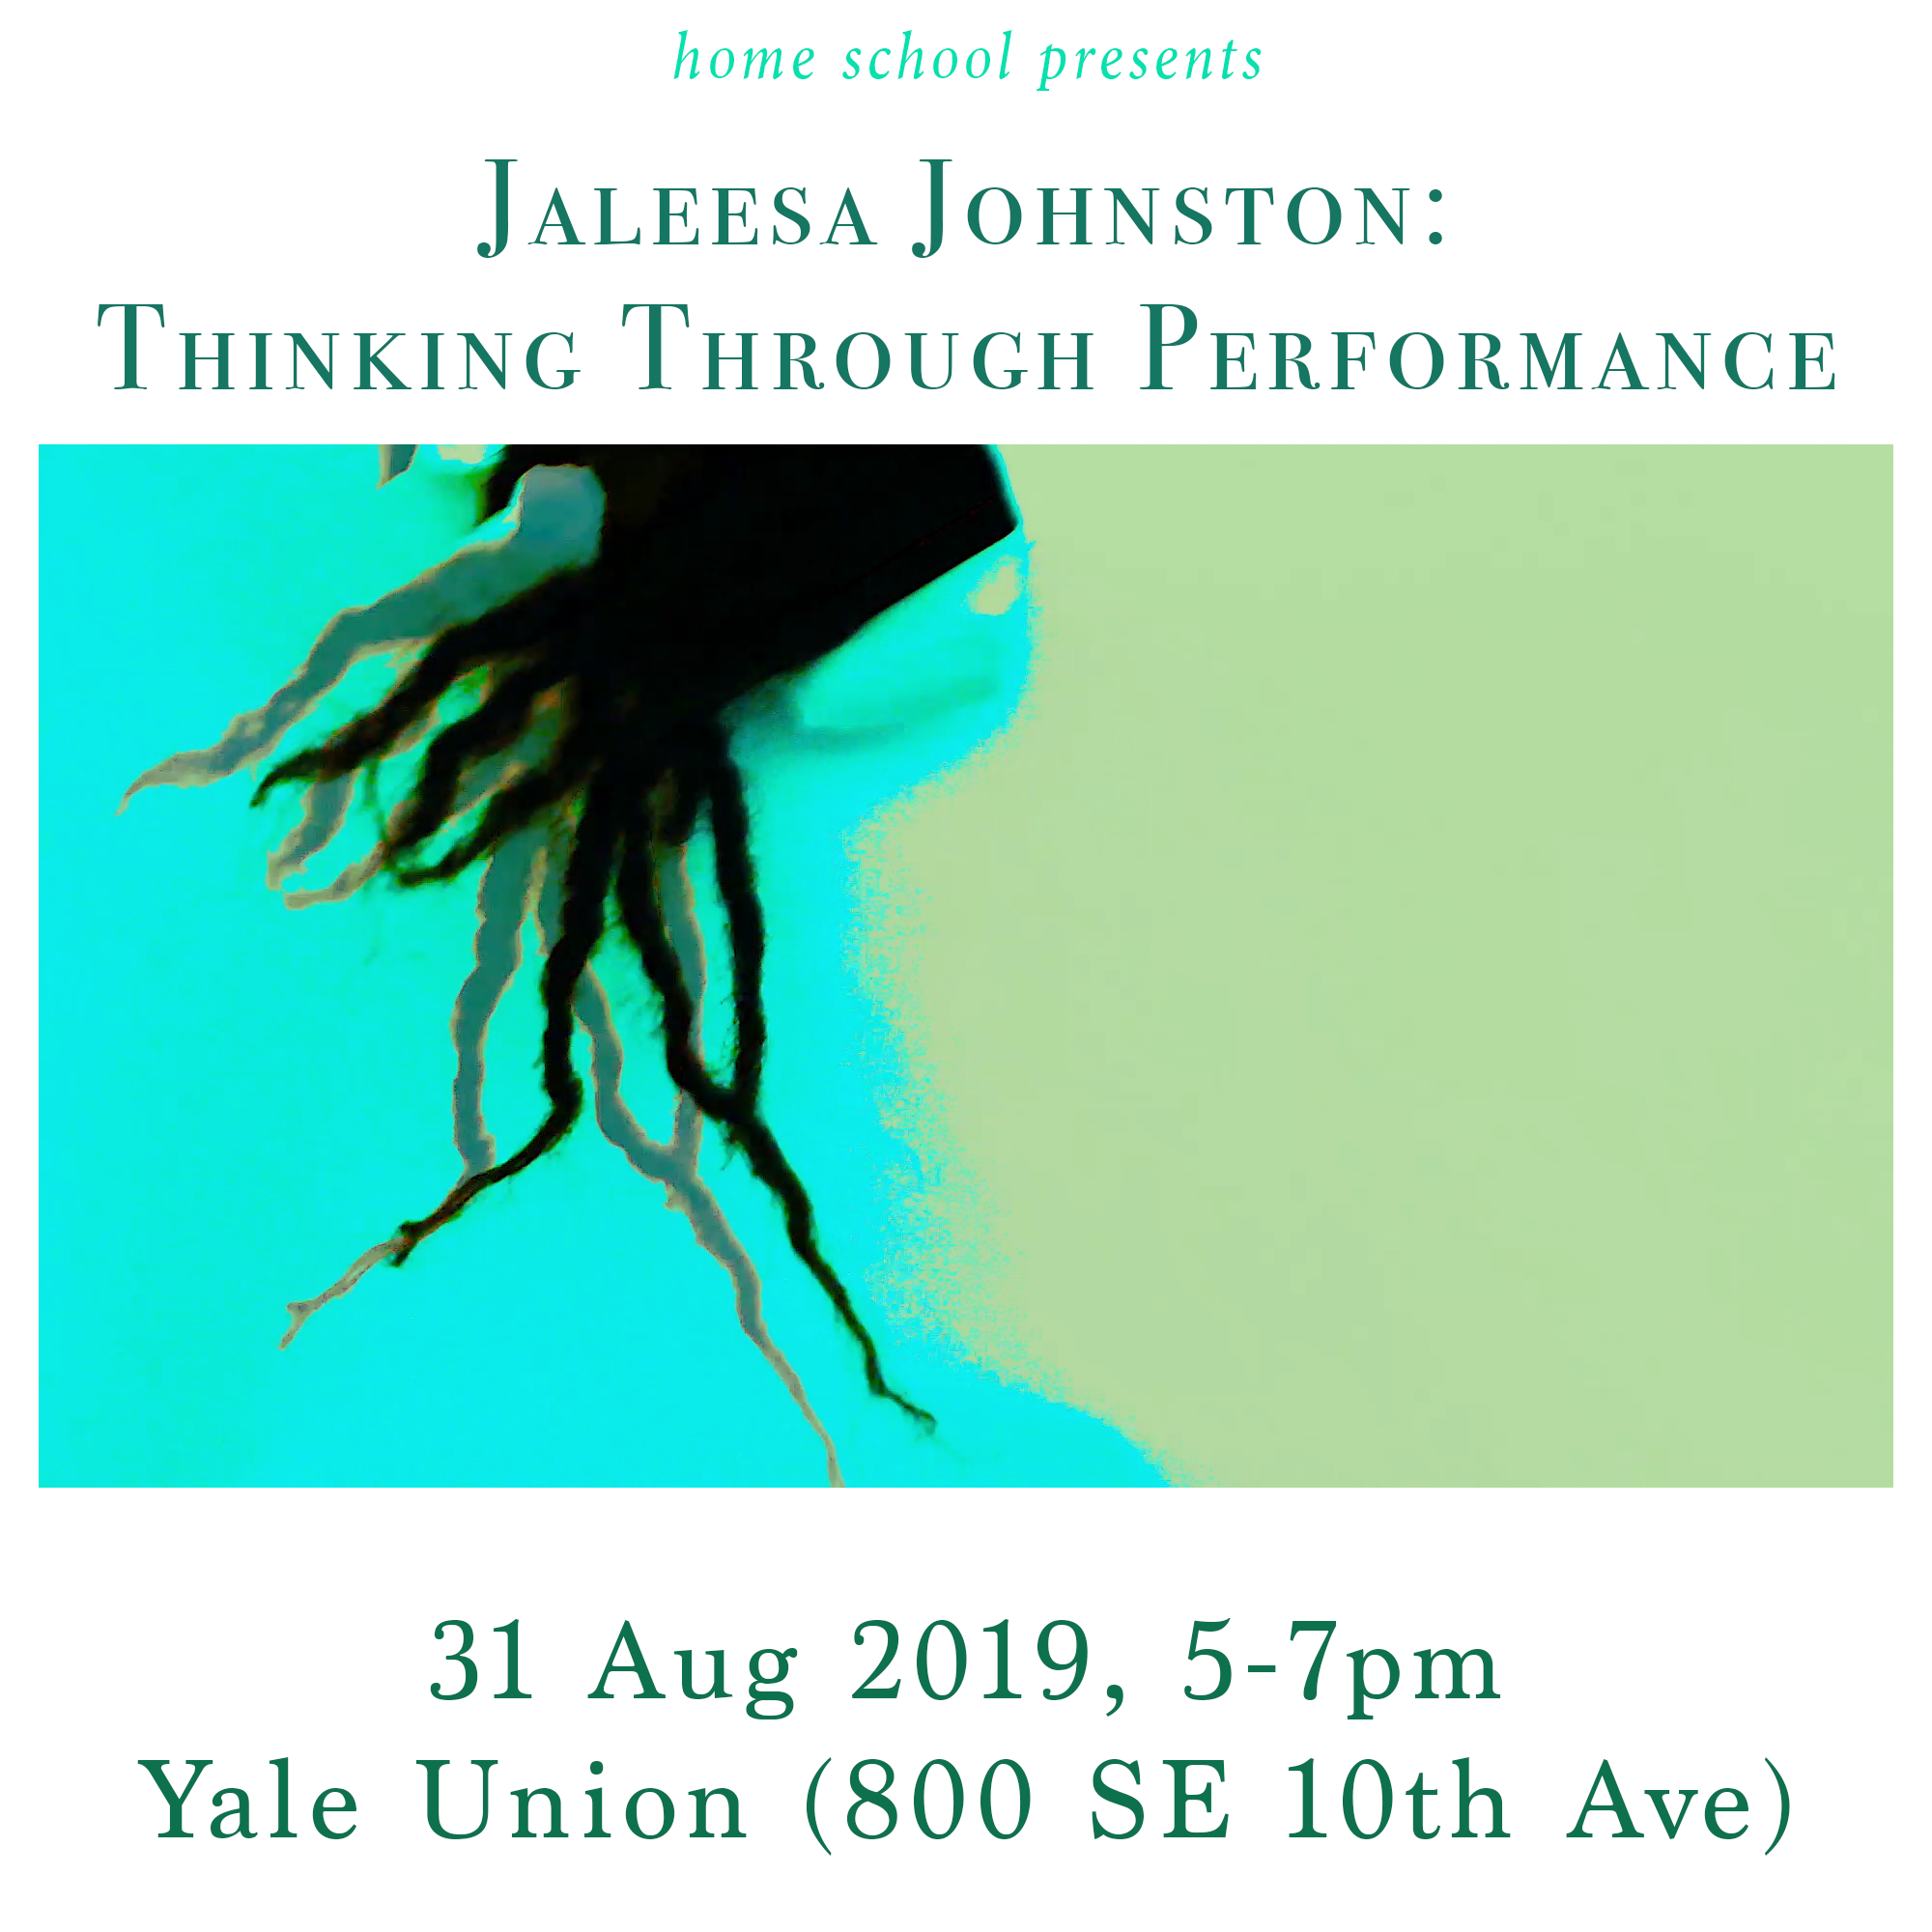 Upcoming Artist Talk at Yale Union - I am very excited to be doing an artist talk at Yale Union this coming Saturday, August 31st from 5:00-7:00 PM as apart of this year's home school programming!  While the focus of the talk is on performance, I will be touching on common threads that run throughout my work as a whole.  Please join me if you can!